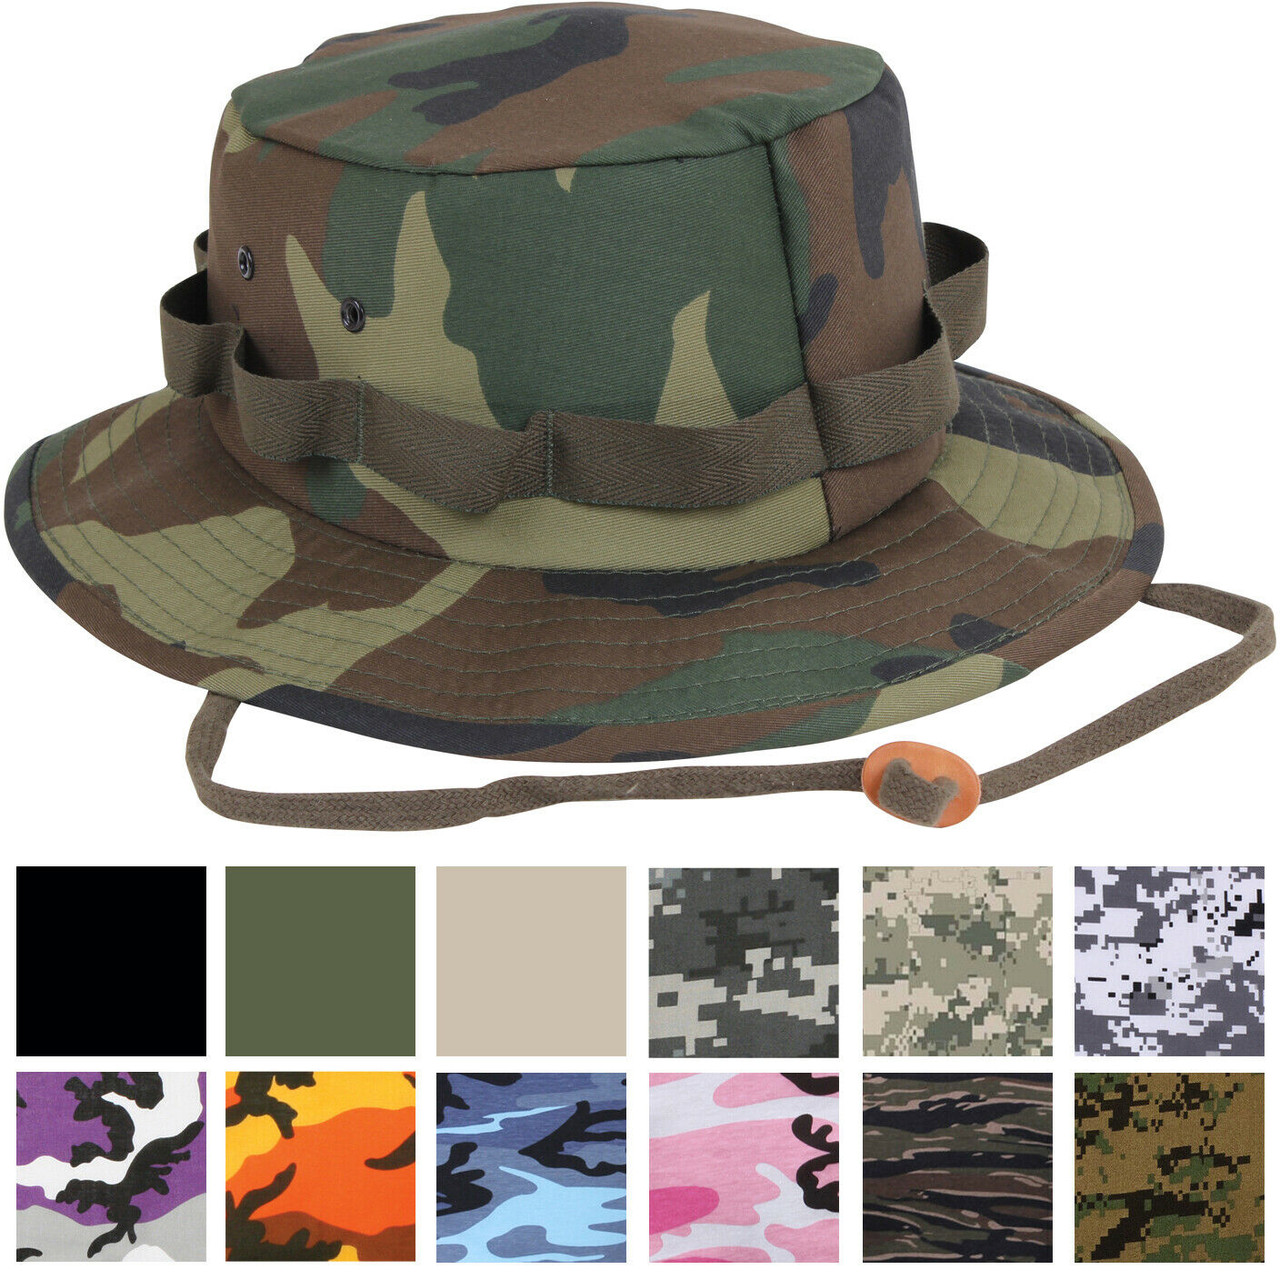 Sky Blue Camouflage Bush Hat Boonie Cap Giggle With Neck Strap Cotton All Sizes